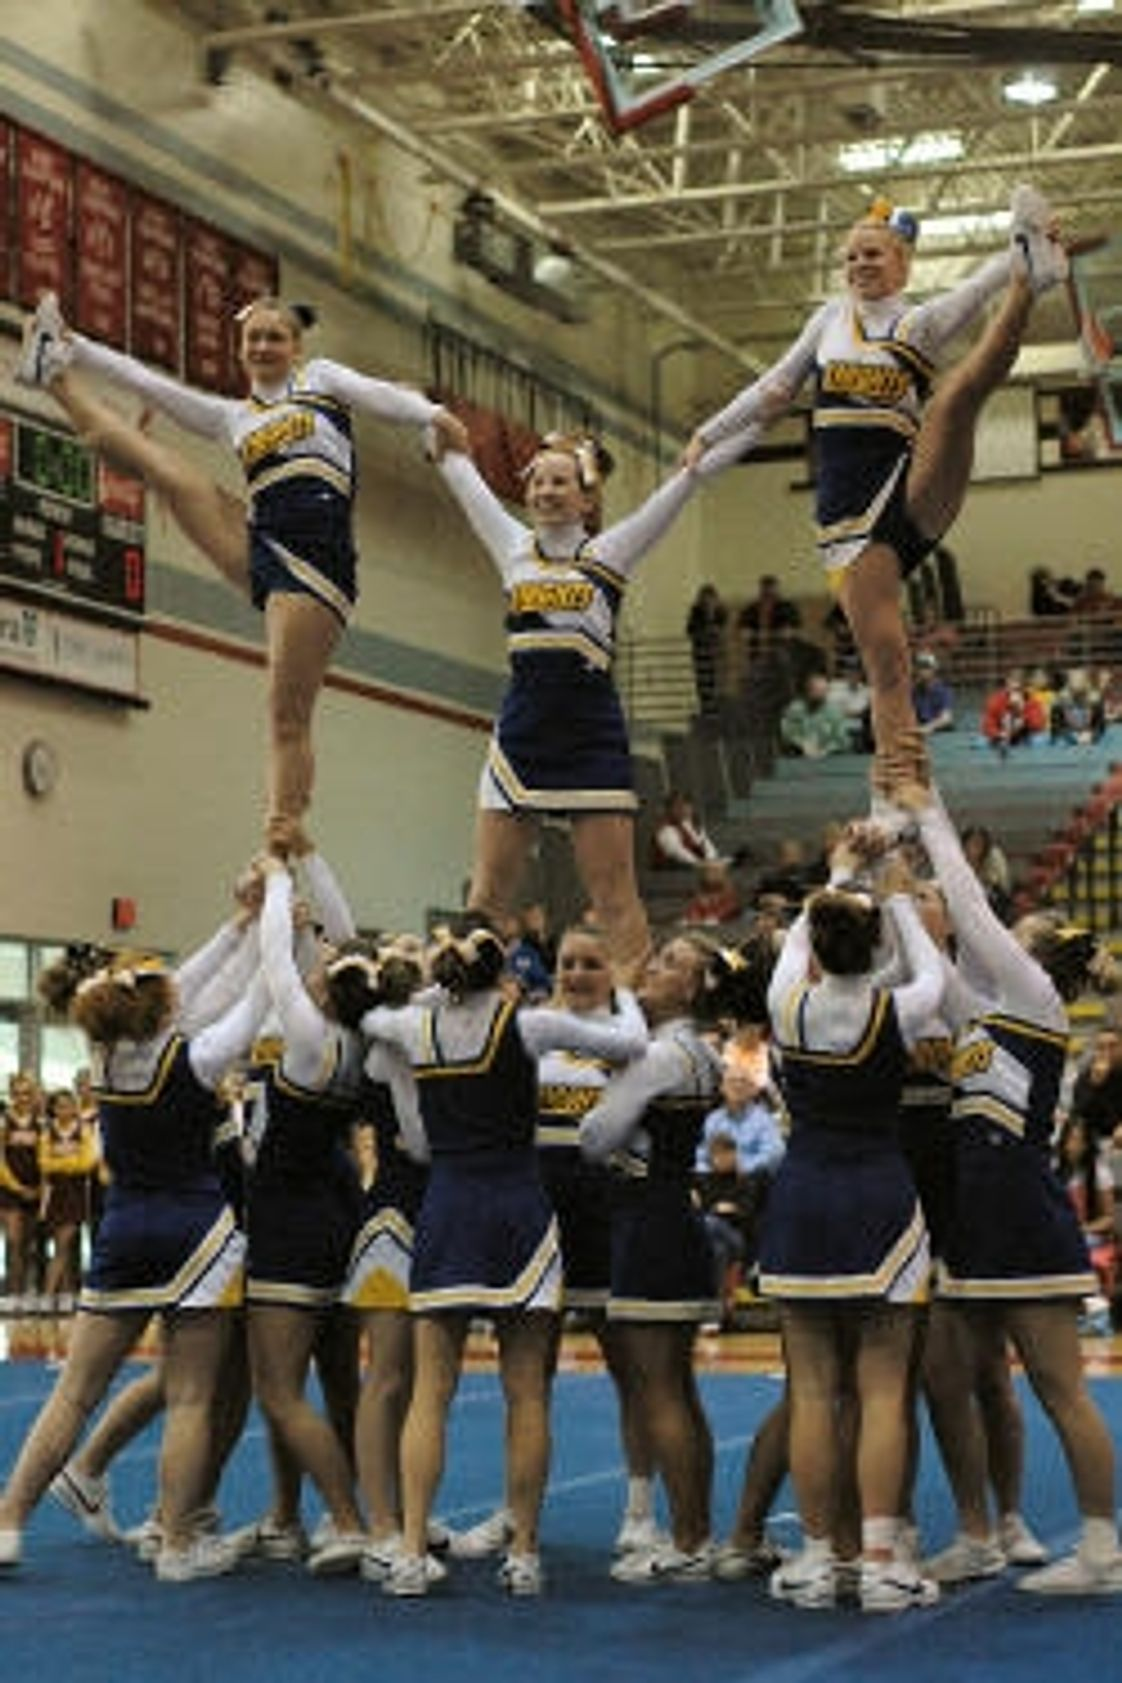 O'gorman High School Photo #1 - OG offers competitive cheer and competitive dance teams.